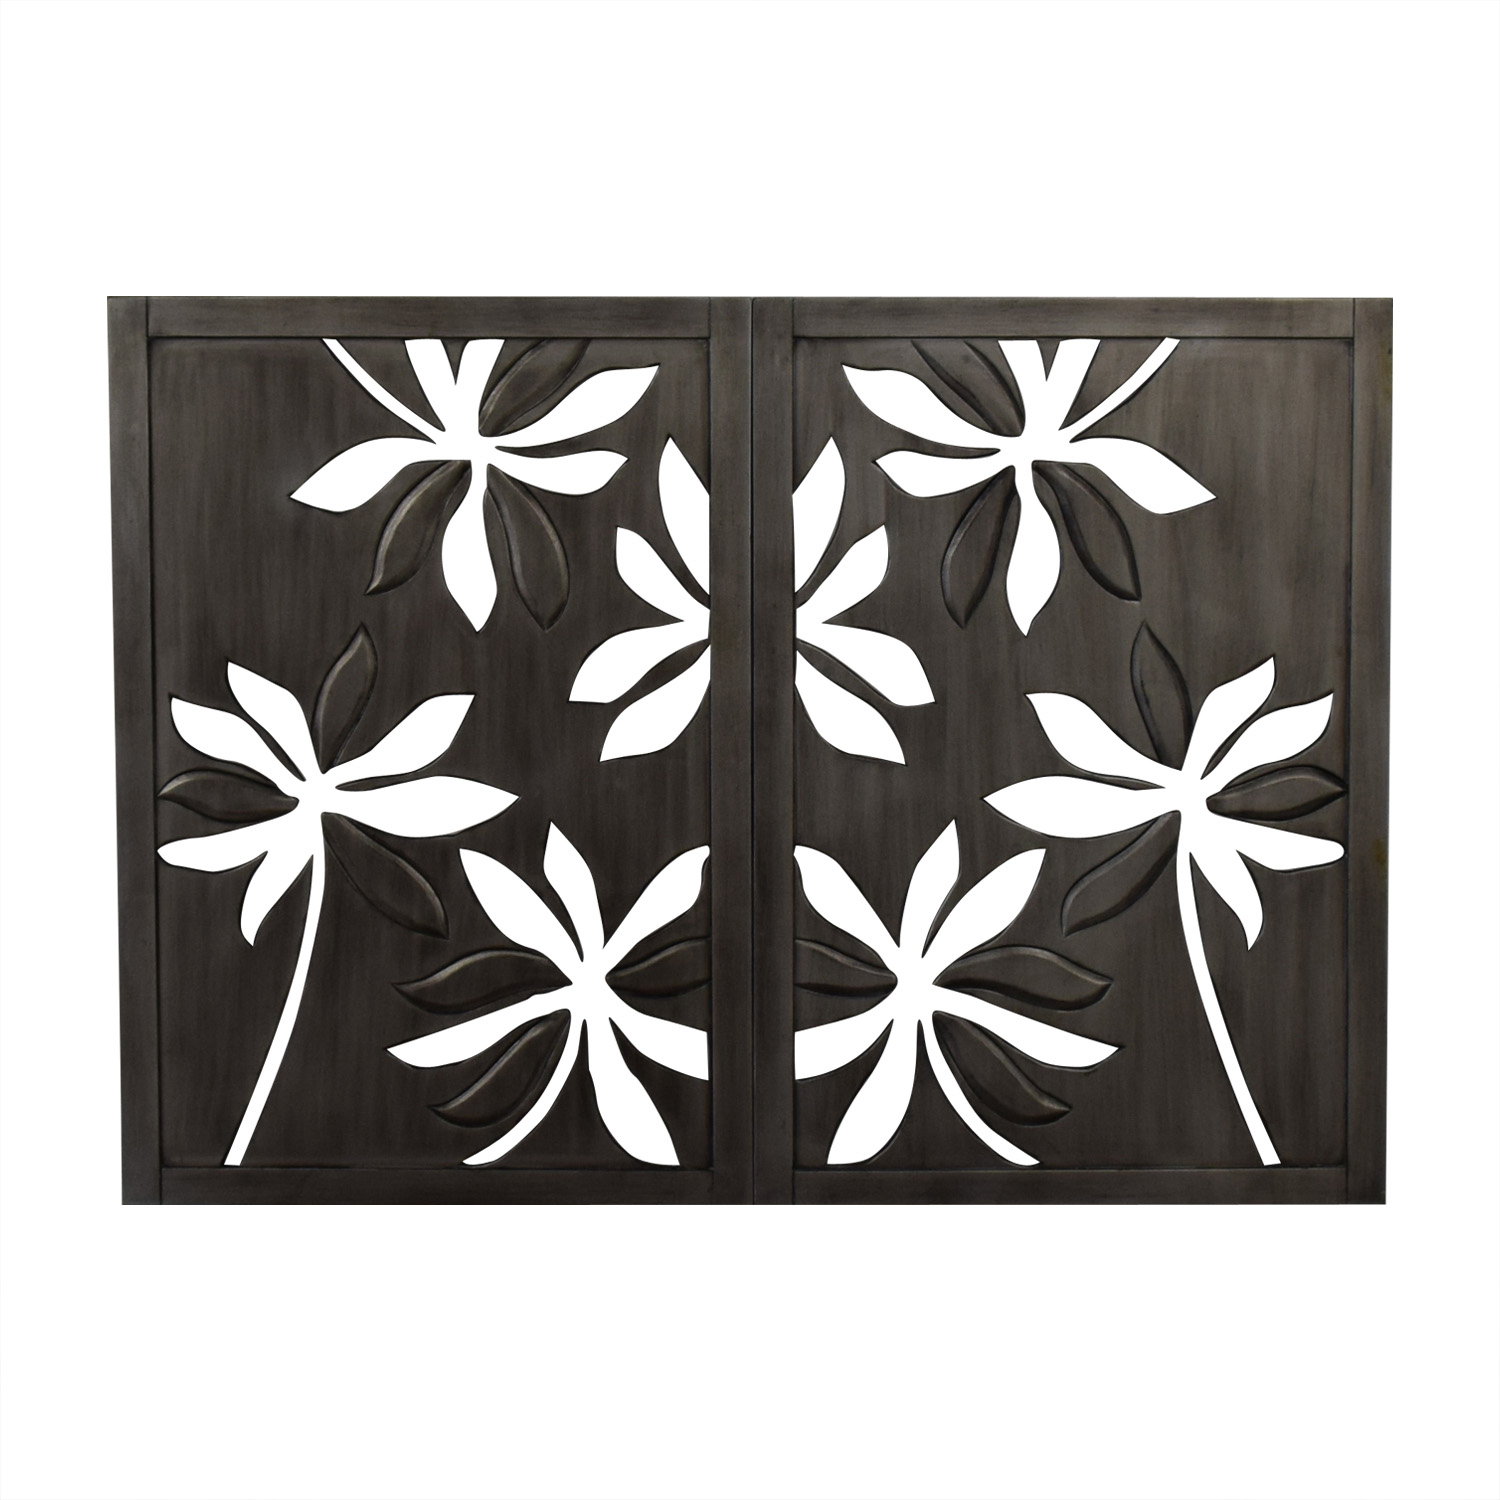 shop Pier 1 Pier 1 Open Carved Floral Flower Wall Art online